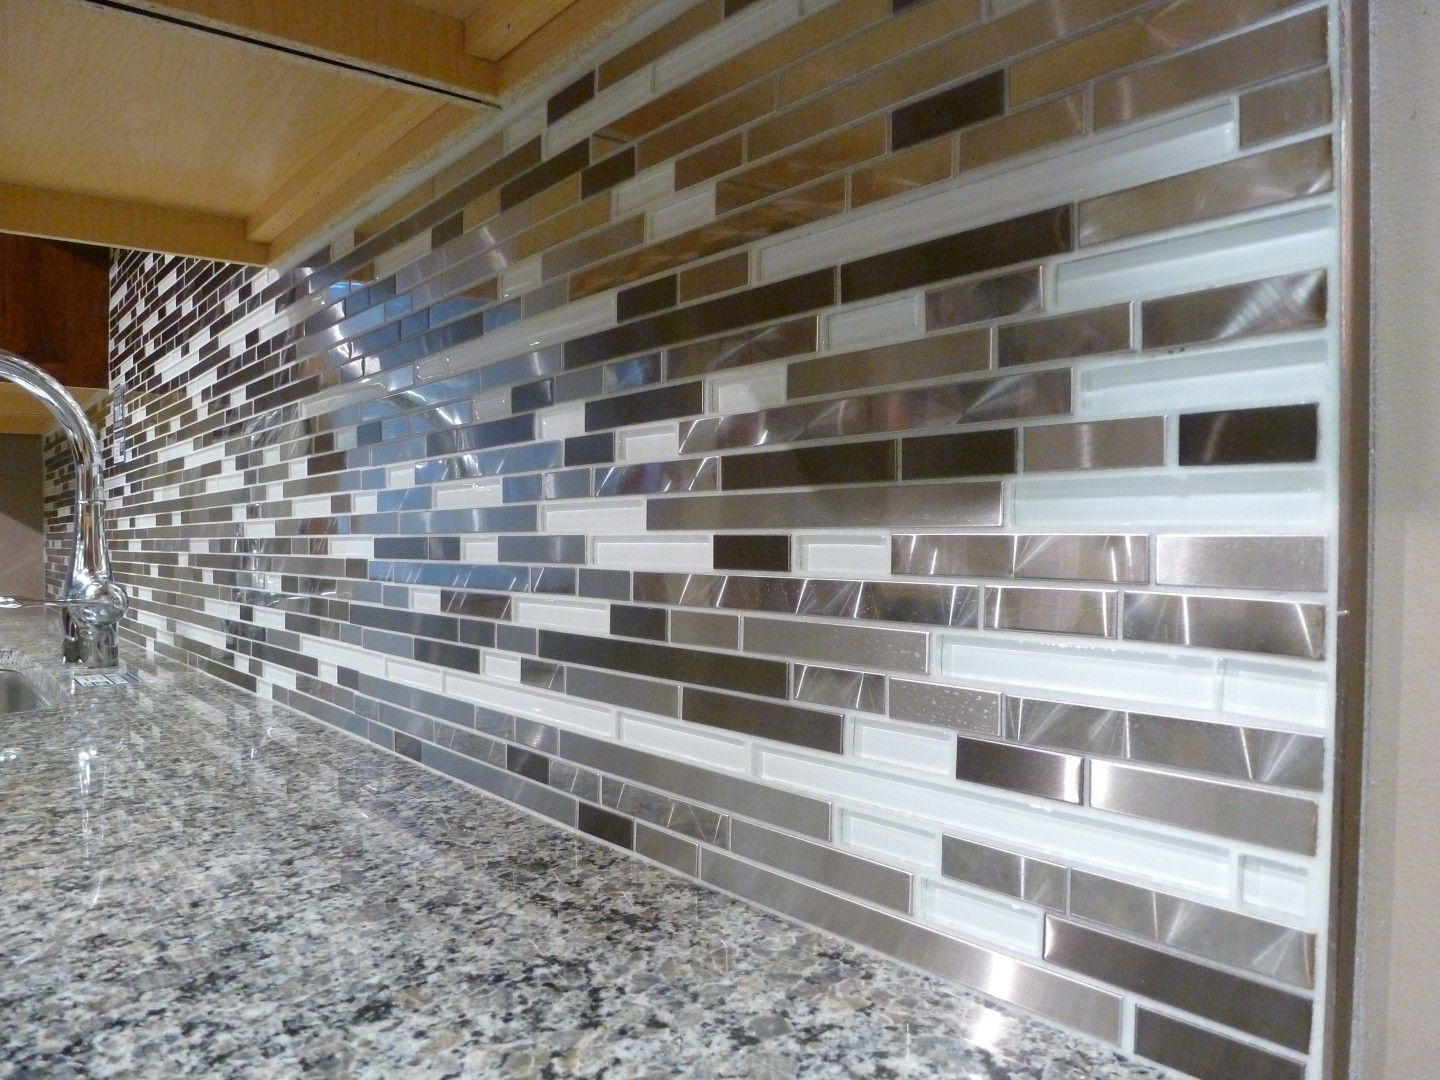 Glass Mosaic Tiles For Your Backsplash